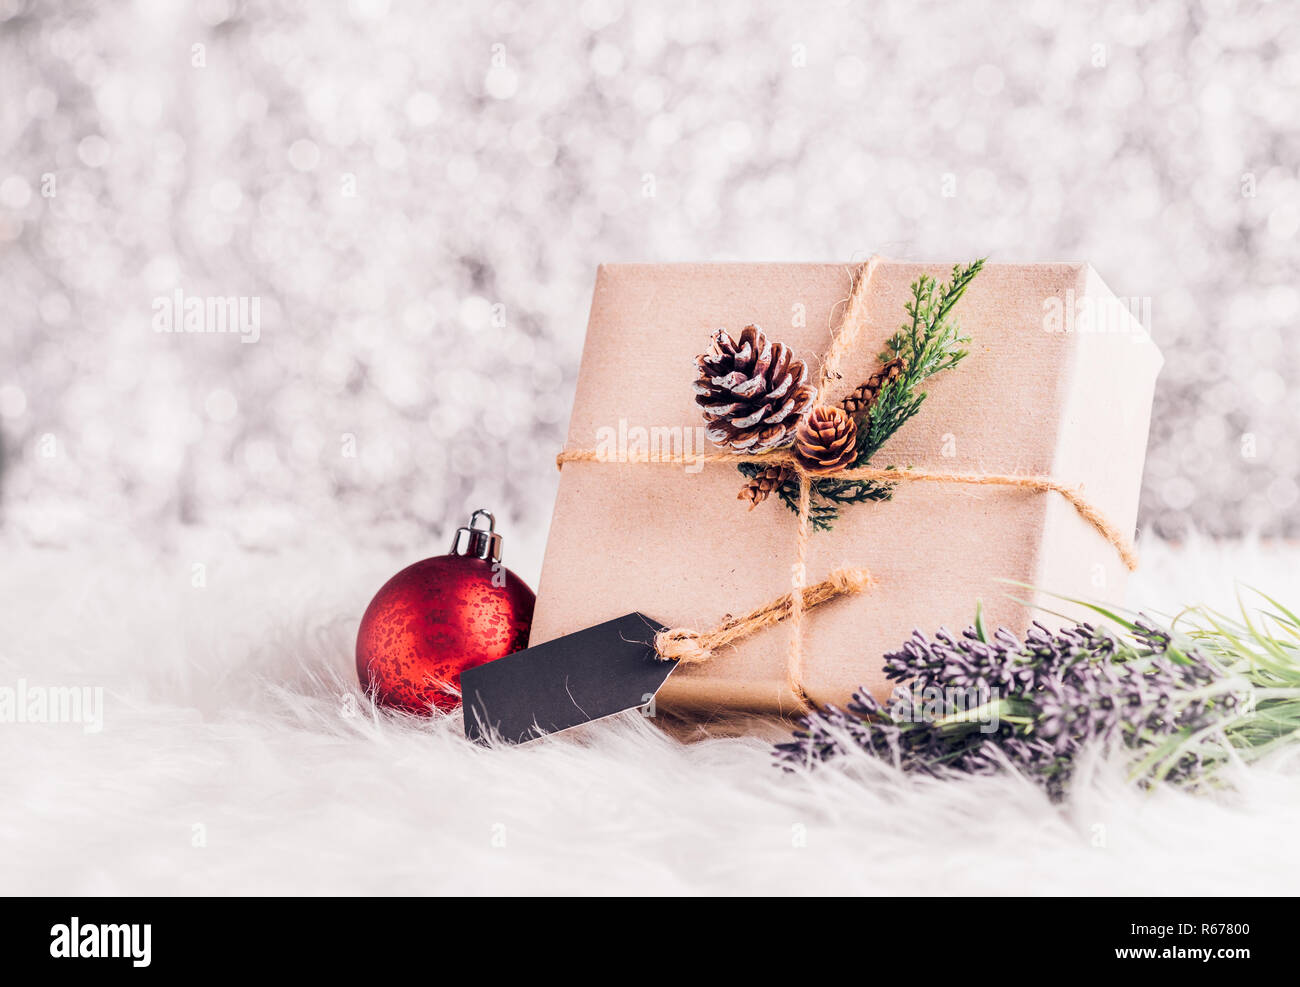 Brown paper craft warped on present box with label tag decorate with pine cone and christmas ball under xmas tree,Gift giving for holiday seasonal con - Stock Image